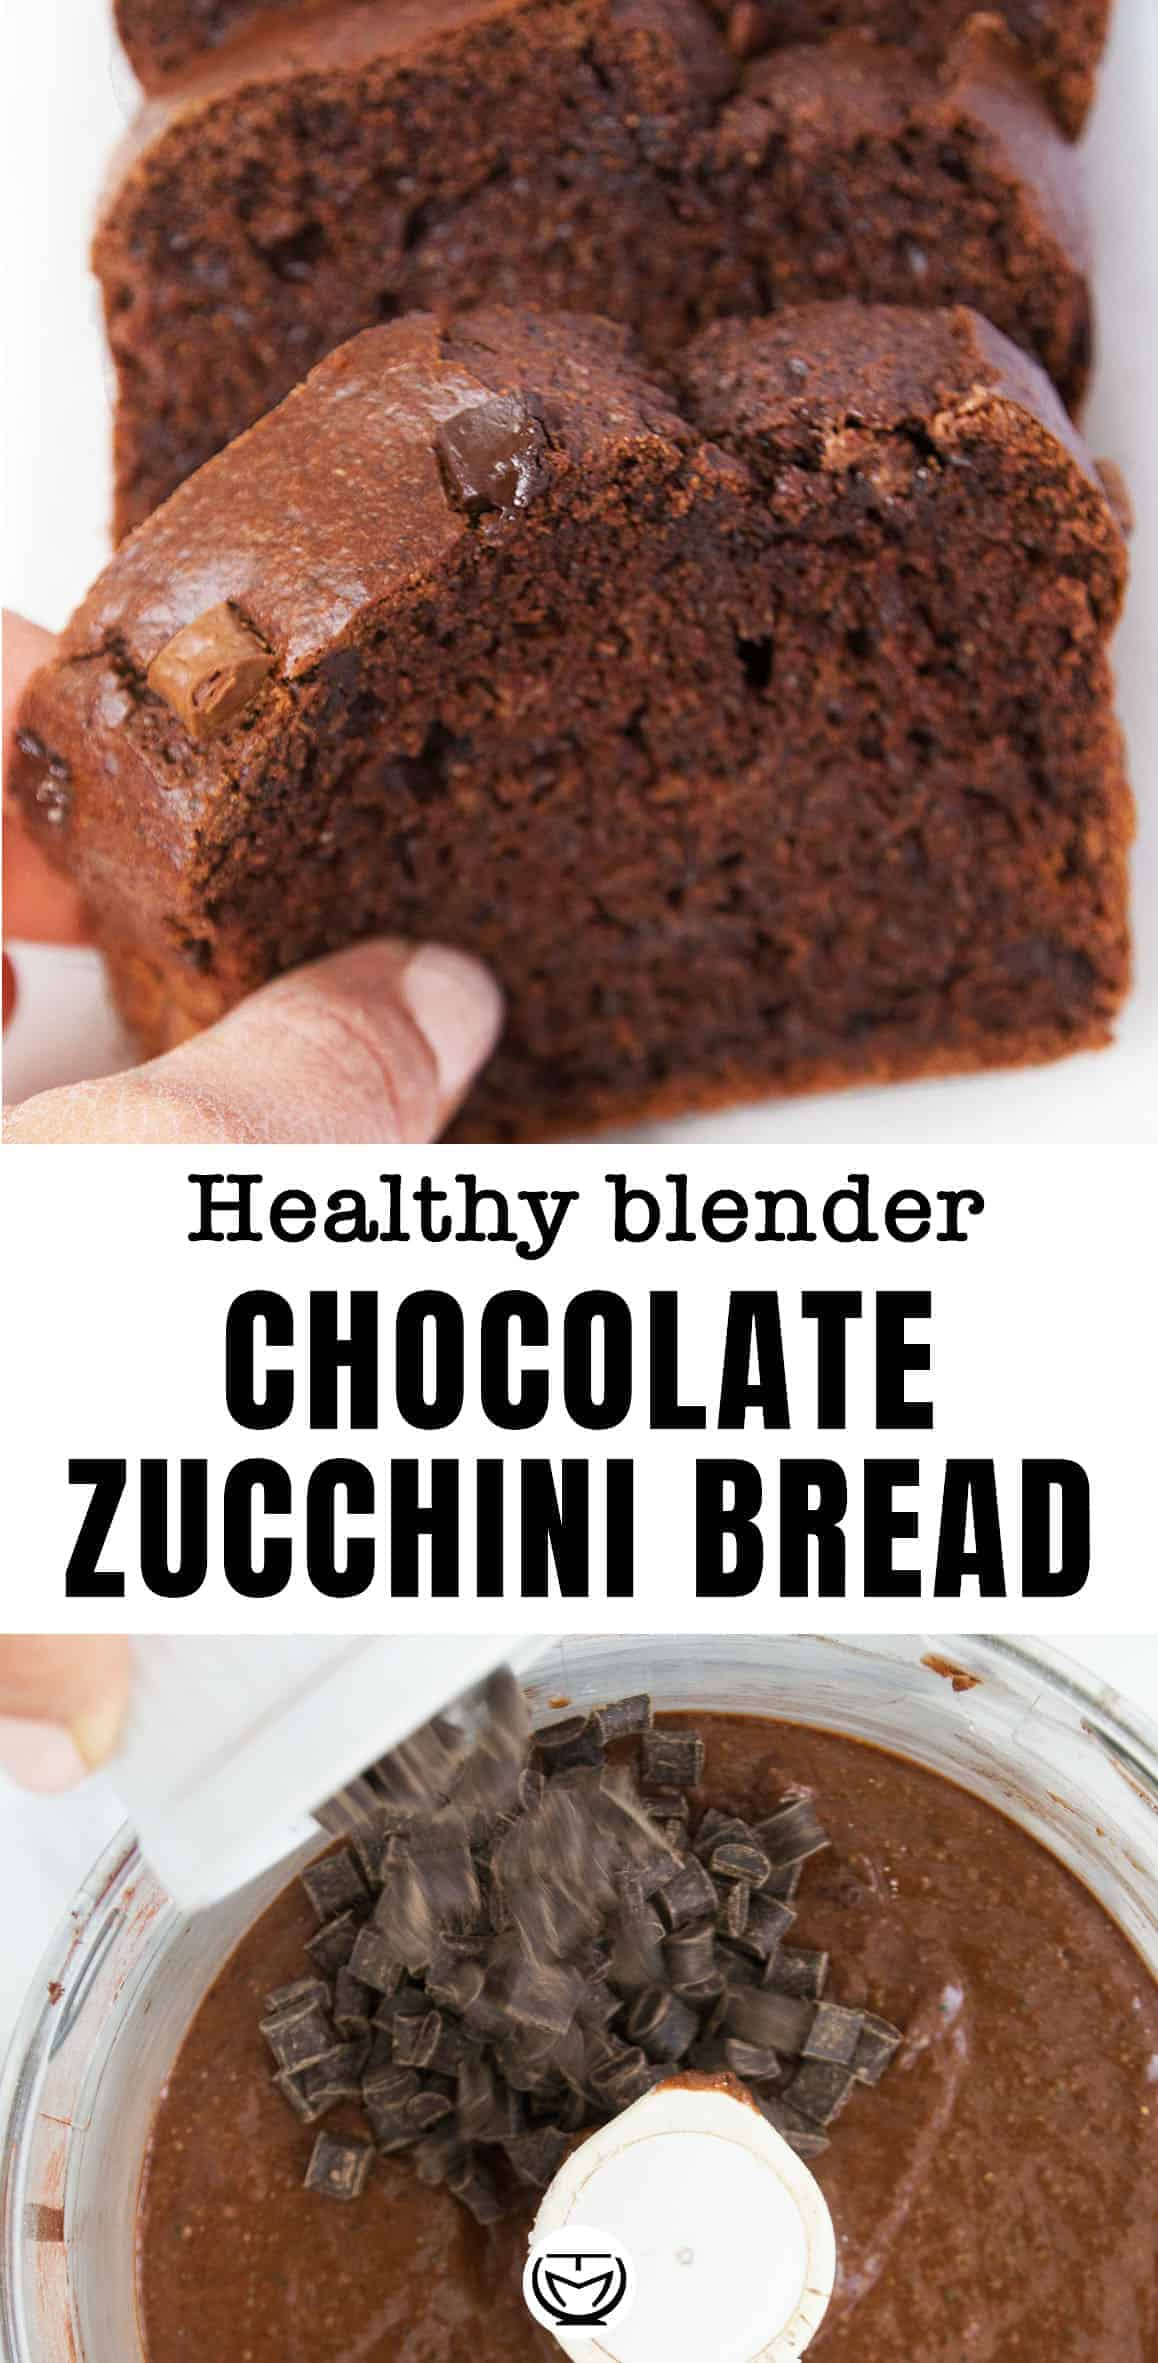 This healthy blender chocolate zucchini bread is low in sugar and packed with whole wheat flour and unsweetened cocoa powder.